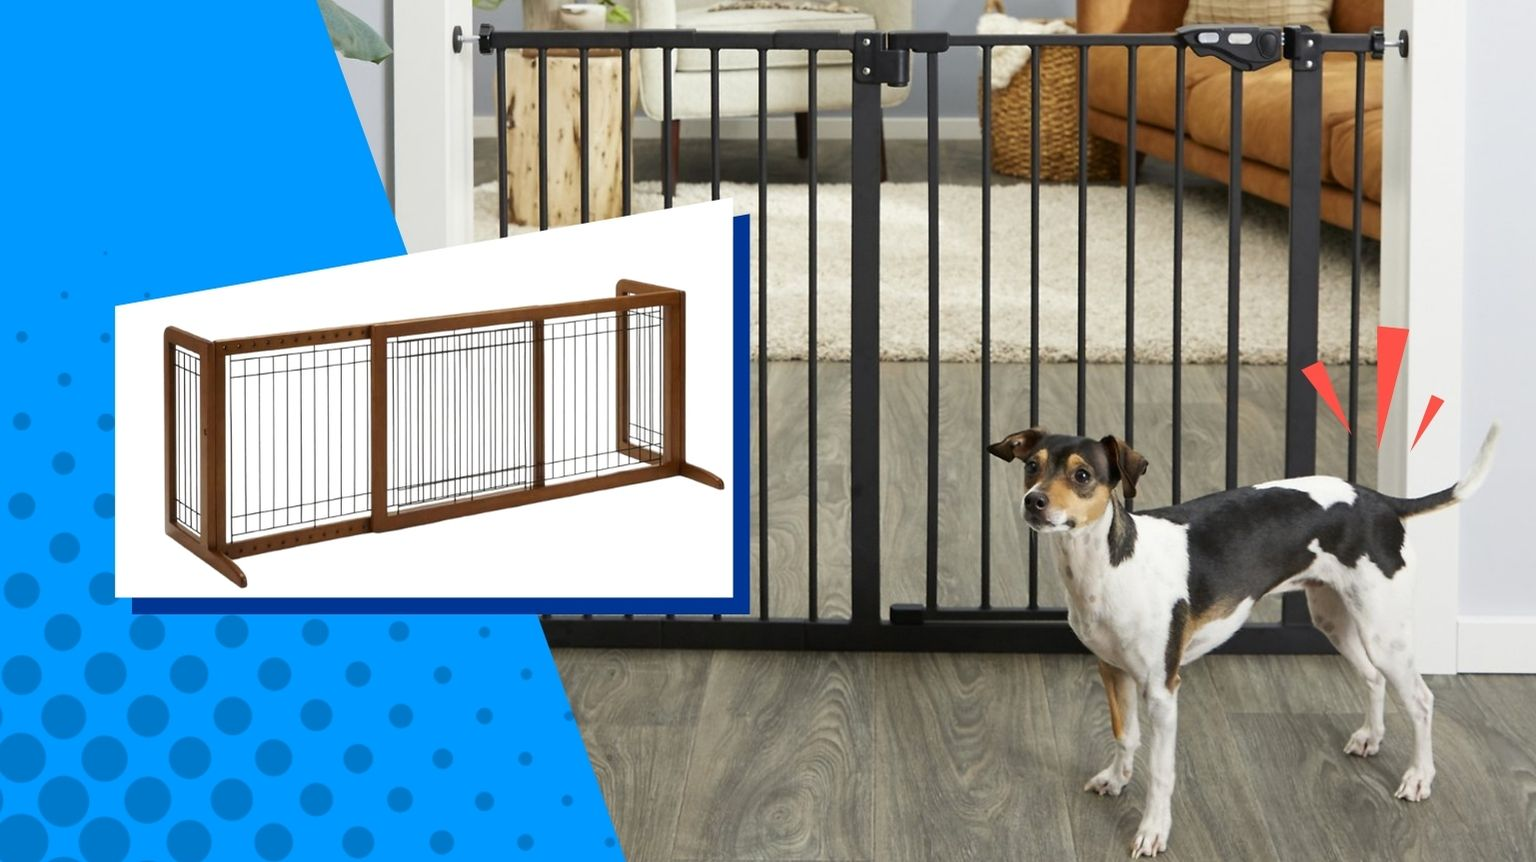 Small dog in front of black dog gate.